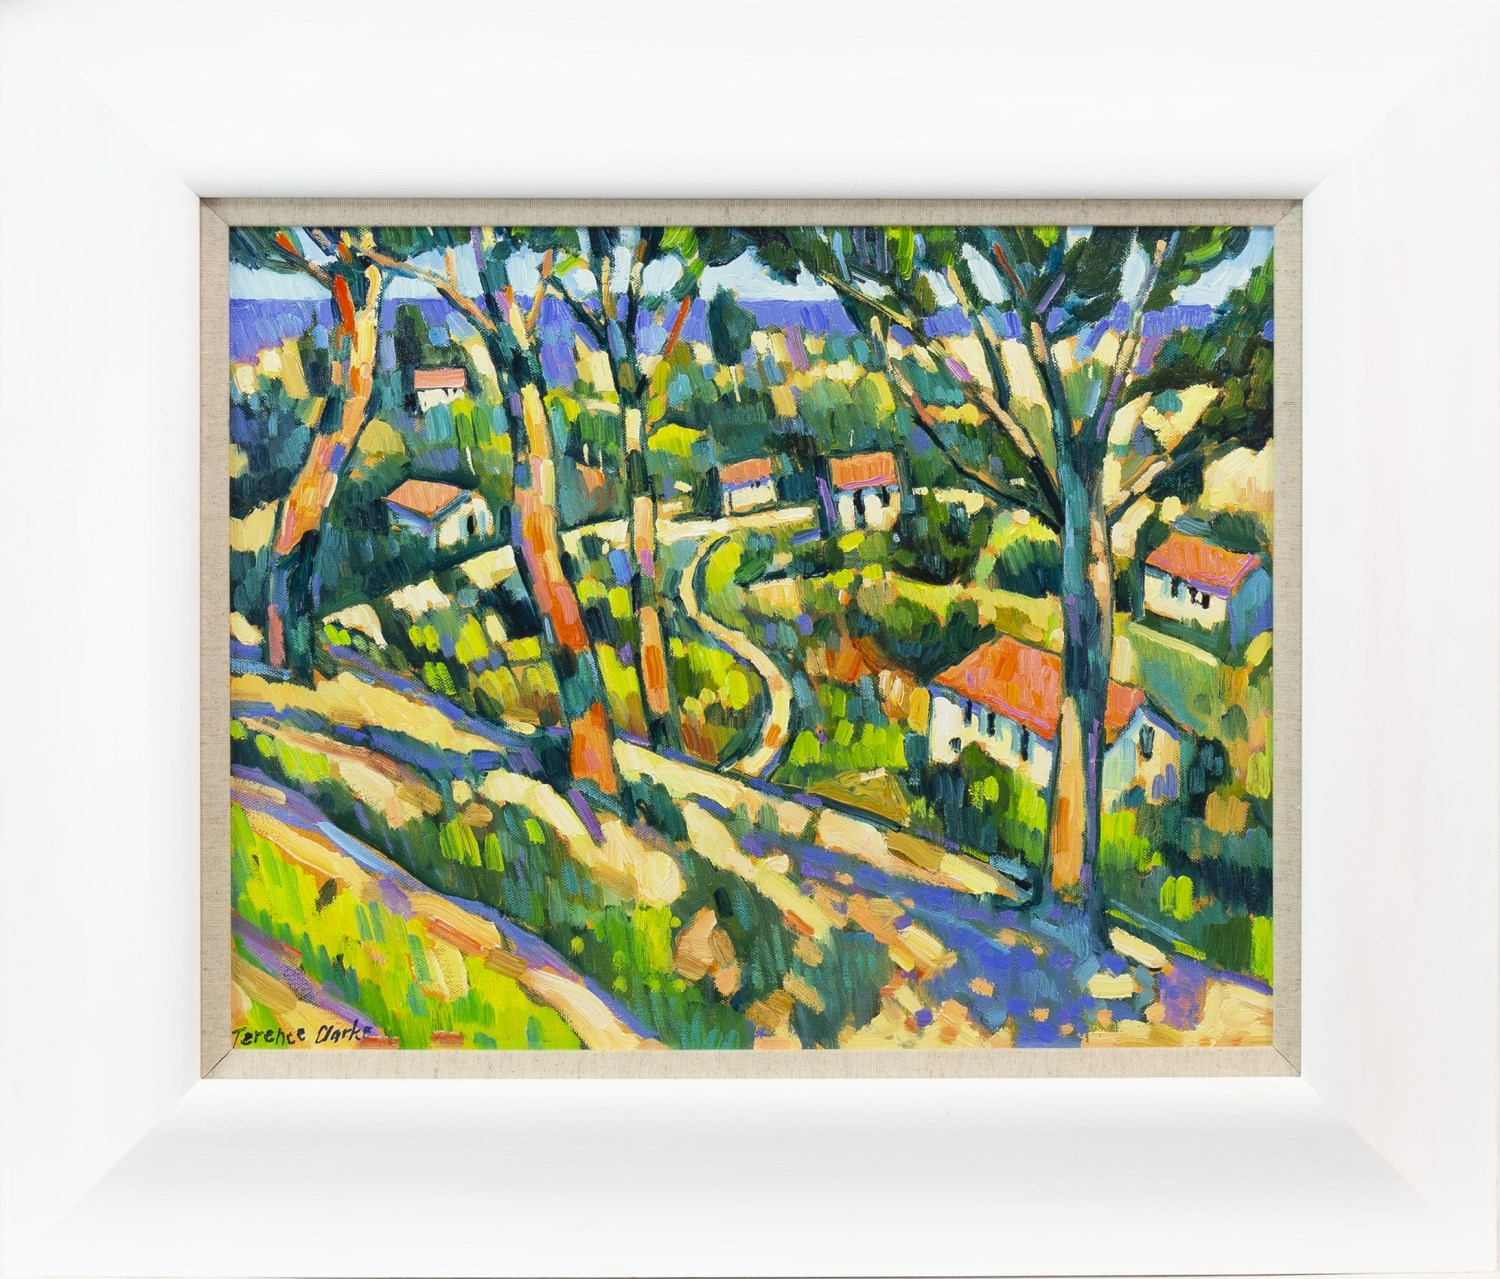 Lot 57 - LANDSCAPE WITH TREES AND RED ROOFED COTTAGES, AN OIL ON CANVAS BY TERENCE CLARKE